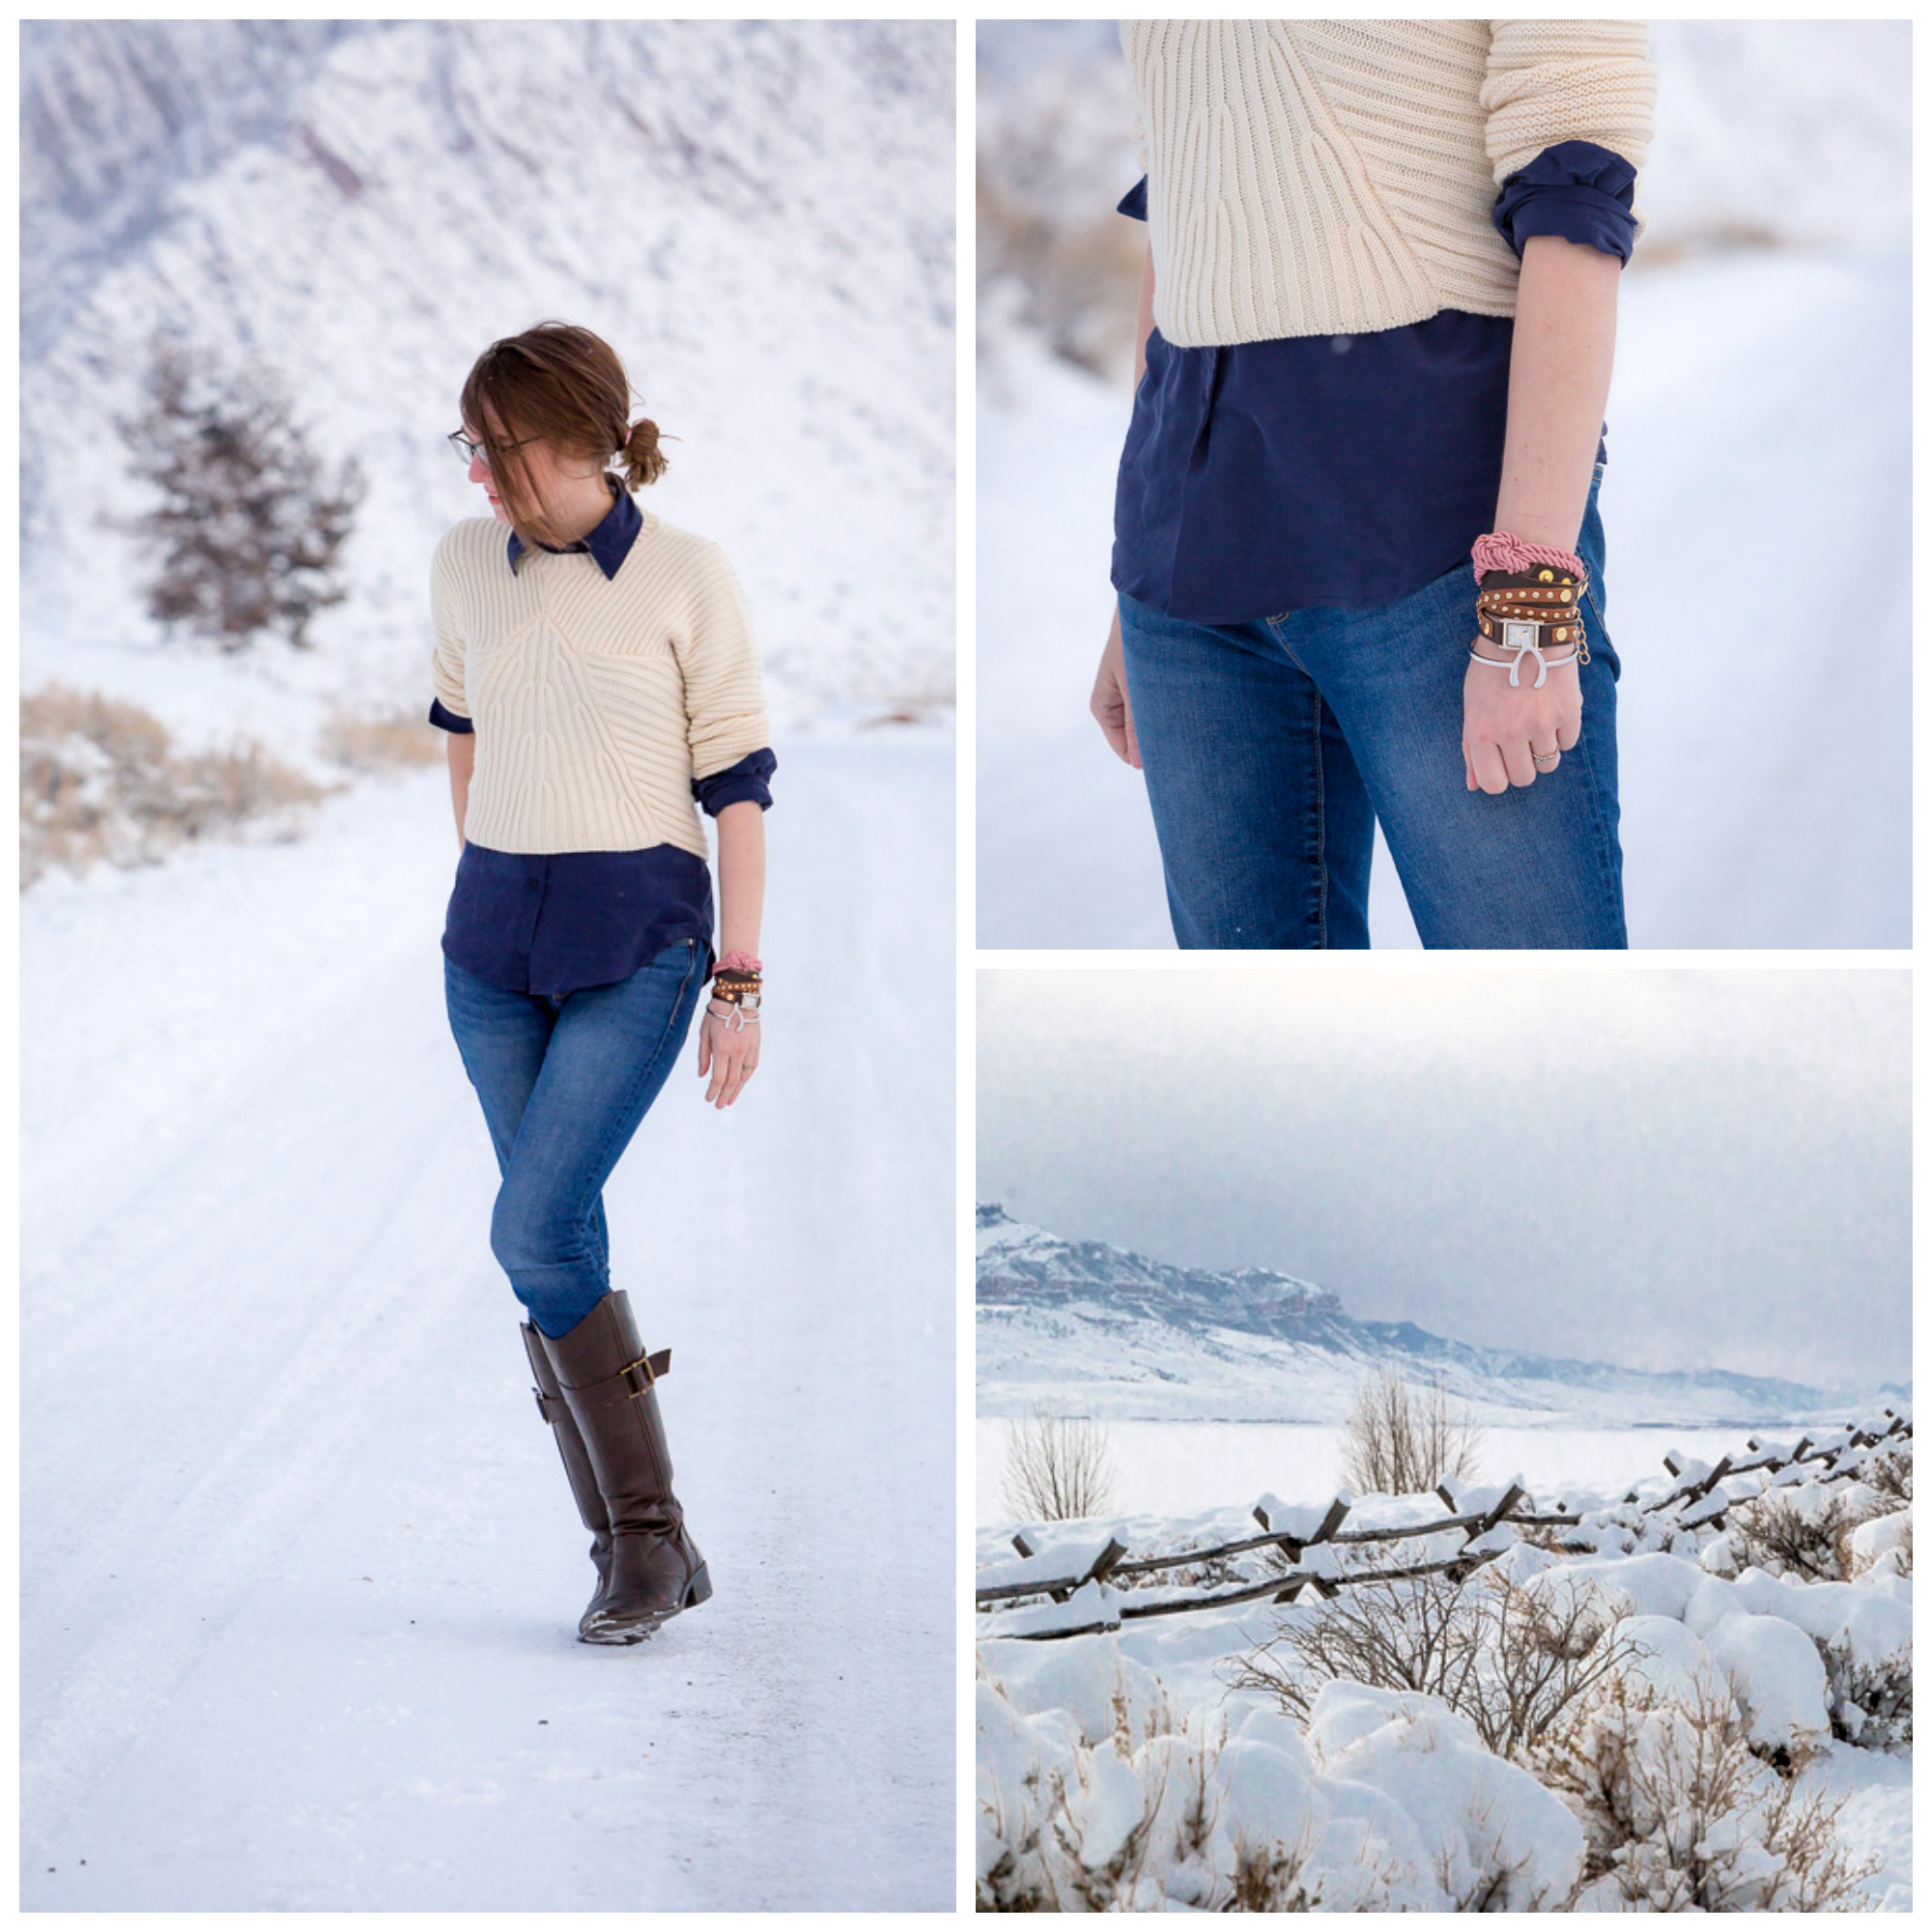 winter outfit, wyoming, Tomboy, snow, never fully dressed, withoutastyle, sweater, layers, popbasic shirt,